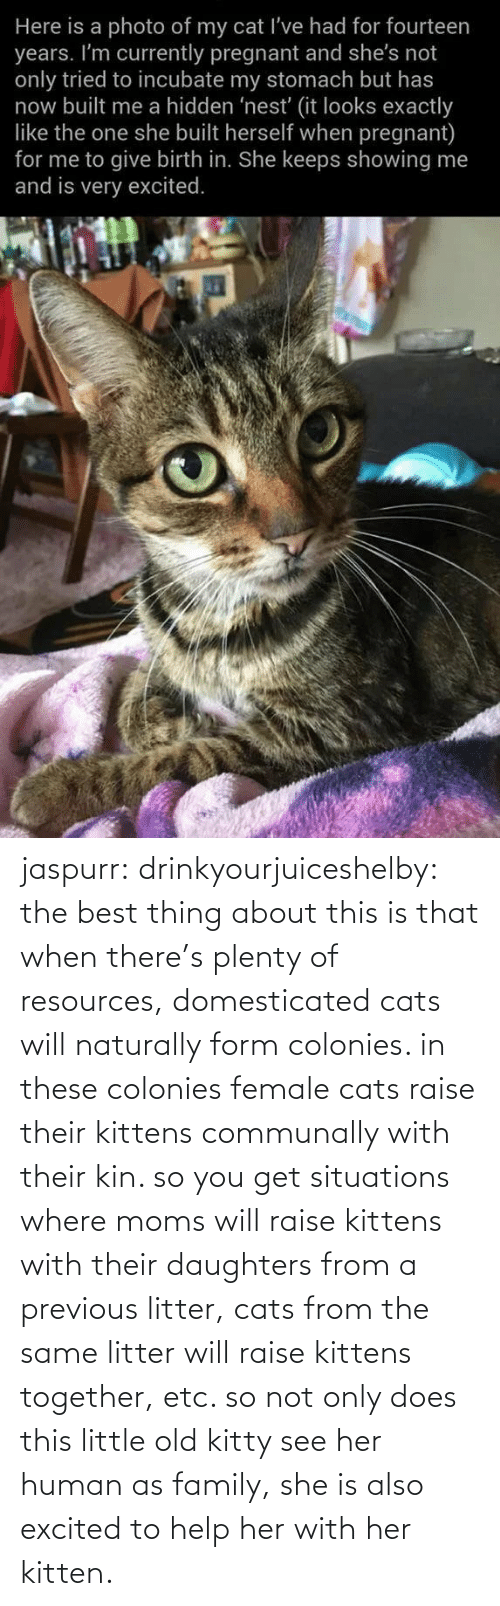 Daughters: jaspurr:  drinkyourjuiceshelby:    the best thing about this is that when there's plenty of resources, domesticated cats will naturally form colonies. in these colonies female cats raise their kittens communally with their kin. so you get situations where moms will raise kittens with their daughters from a previous litter, cats from the same litter will raise kittens together, etc. so not only does this little old kitty see her human as family, she is also excited to help her with her kitten.